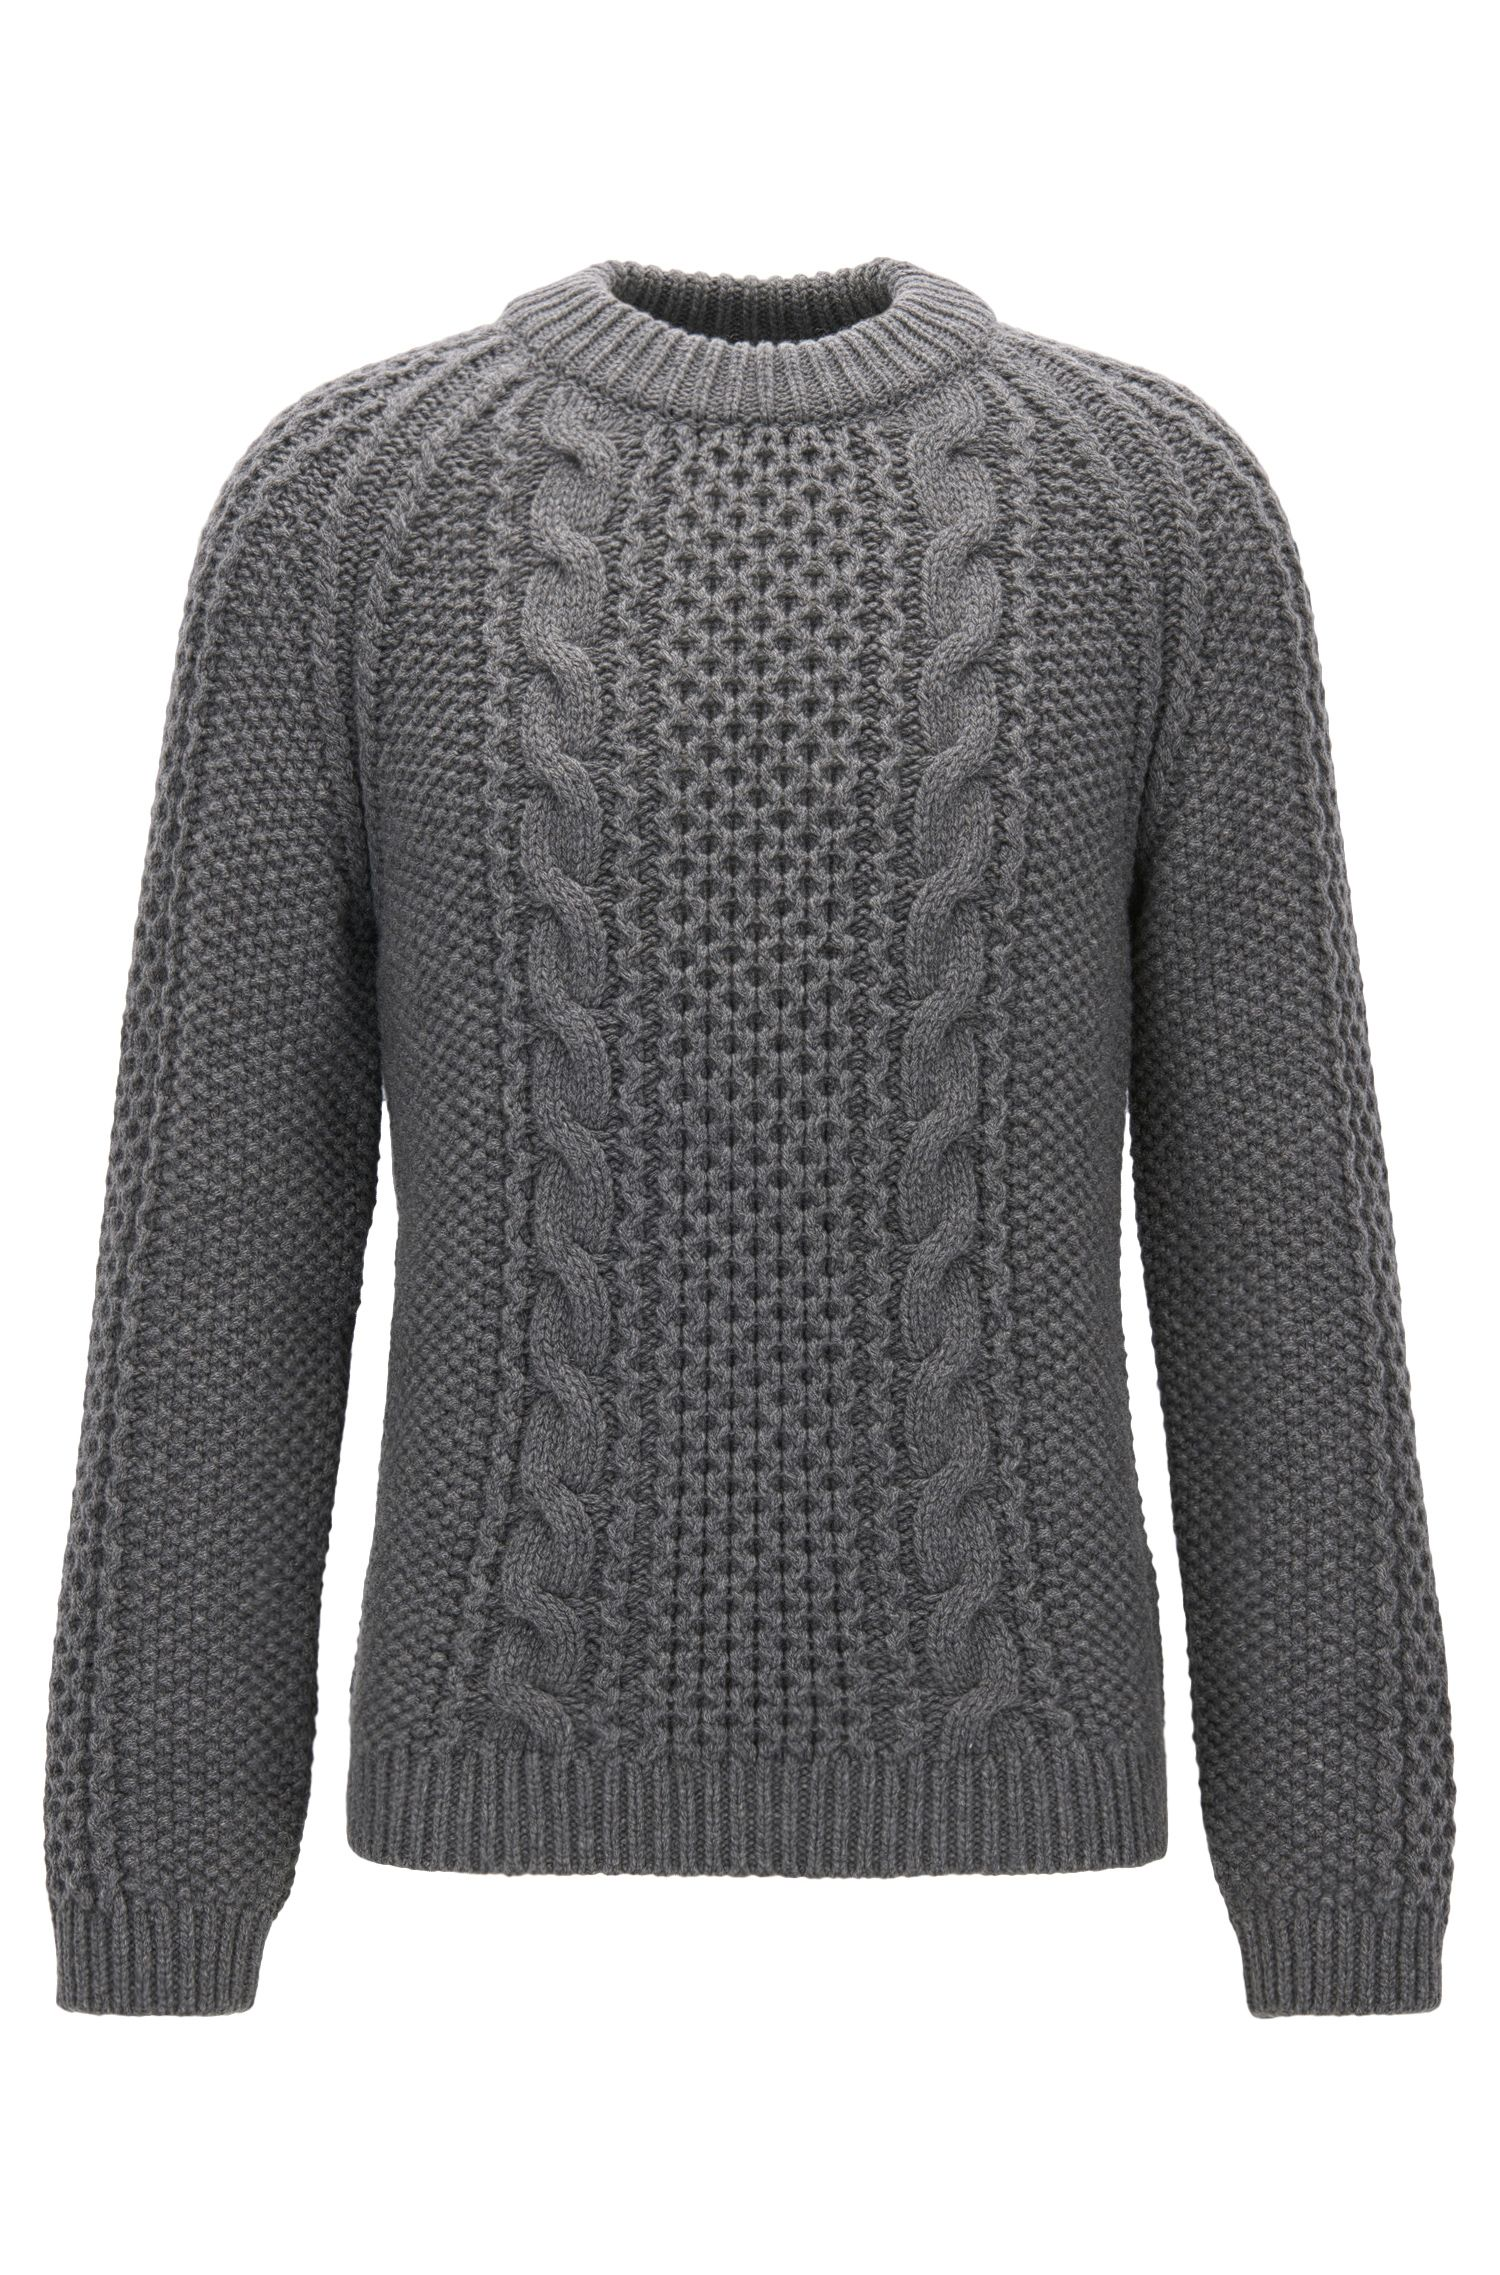 Modern cable-knit sweater in a cashmere blend